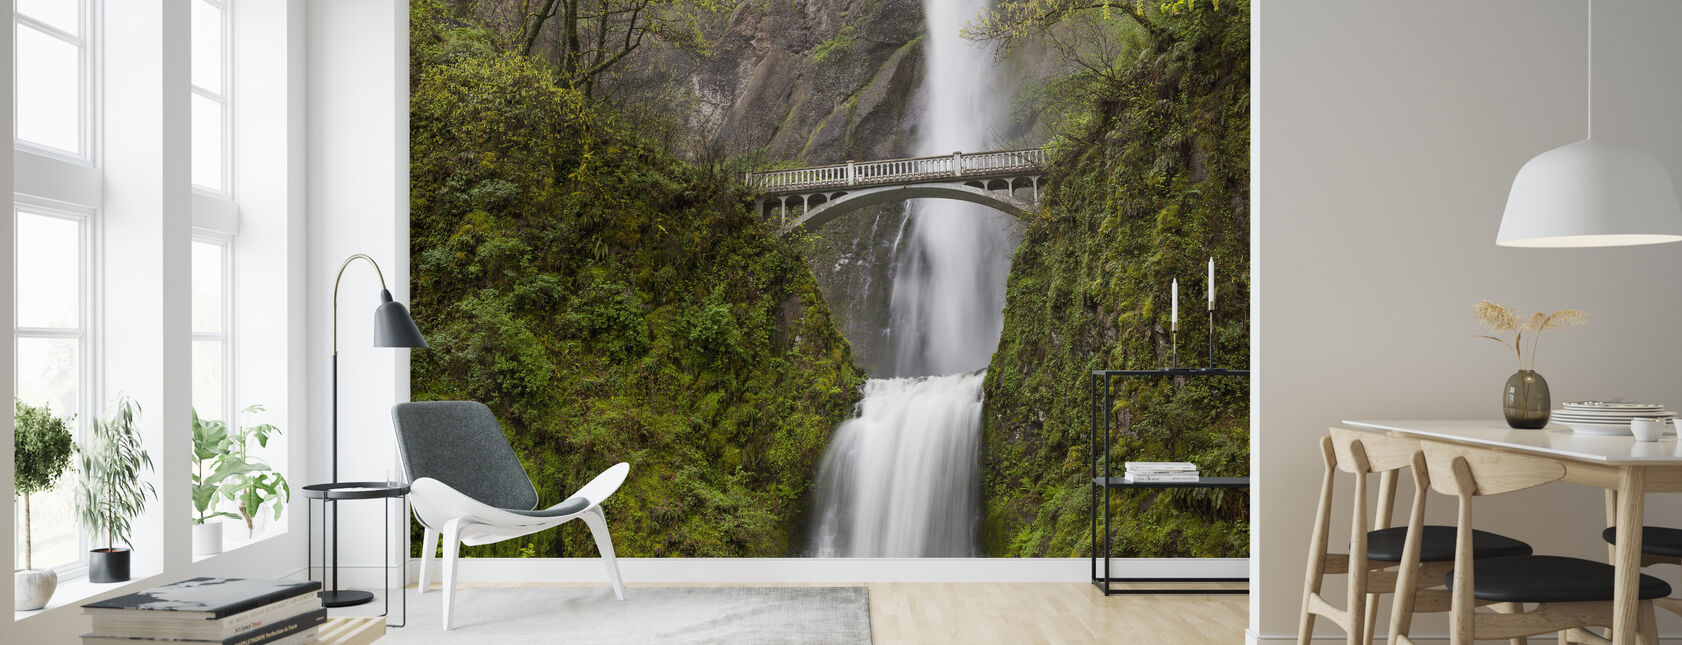 Multnomah Falls - Wallpaper - Living Room